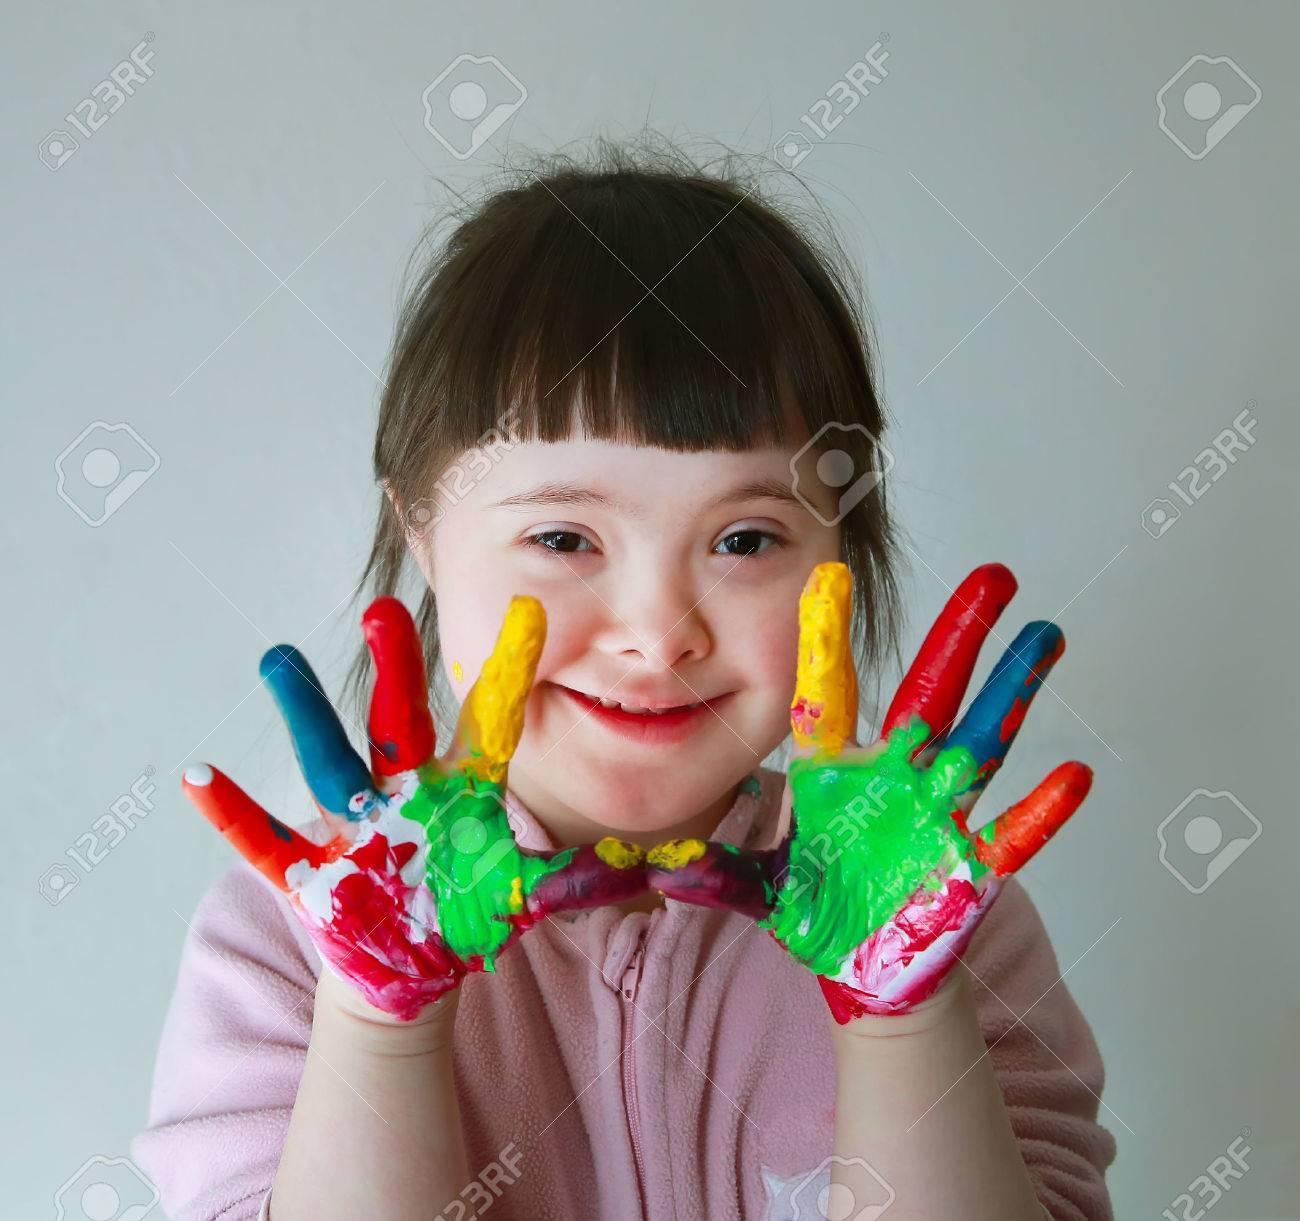 Cute little girl with painted hands. Isolated on grey background. Standard-Bild - 39267676